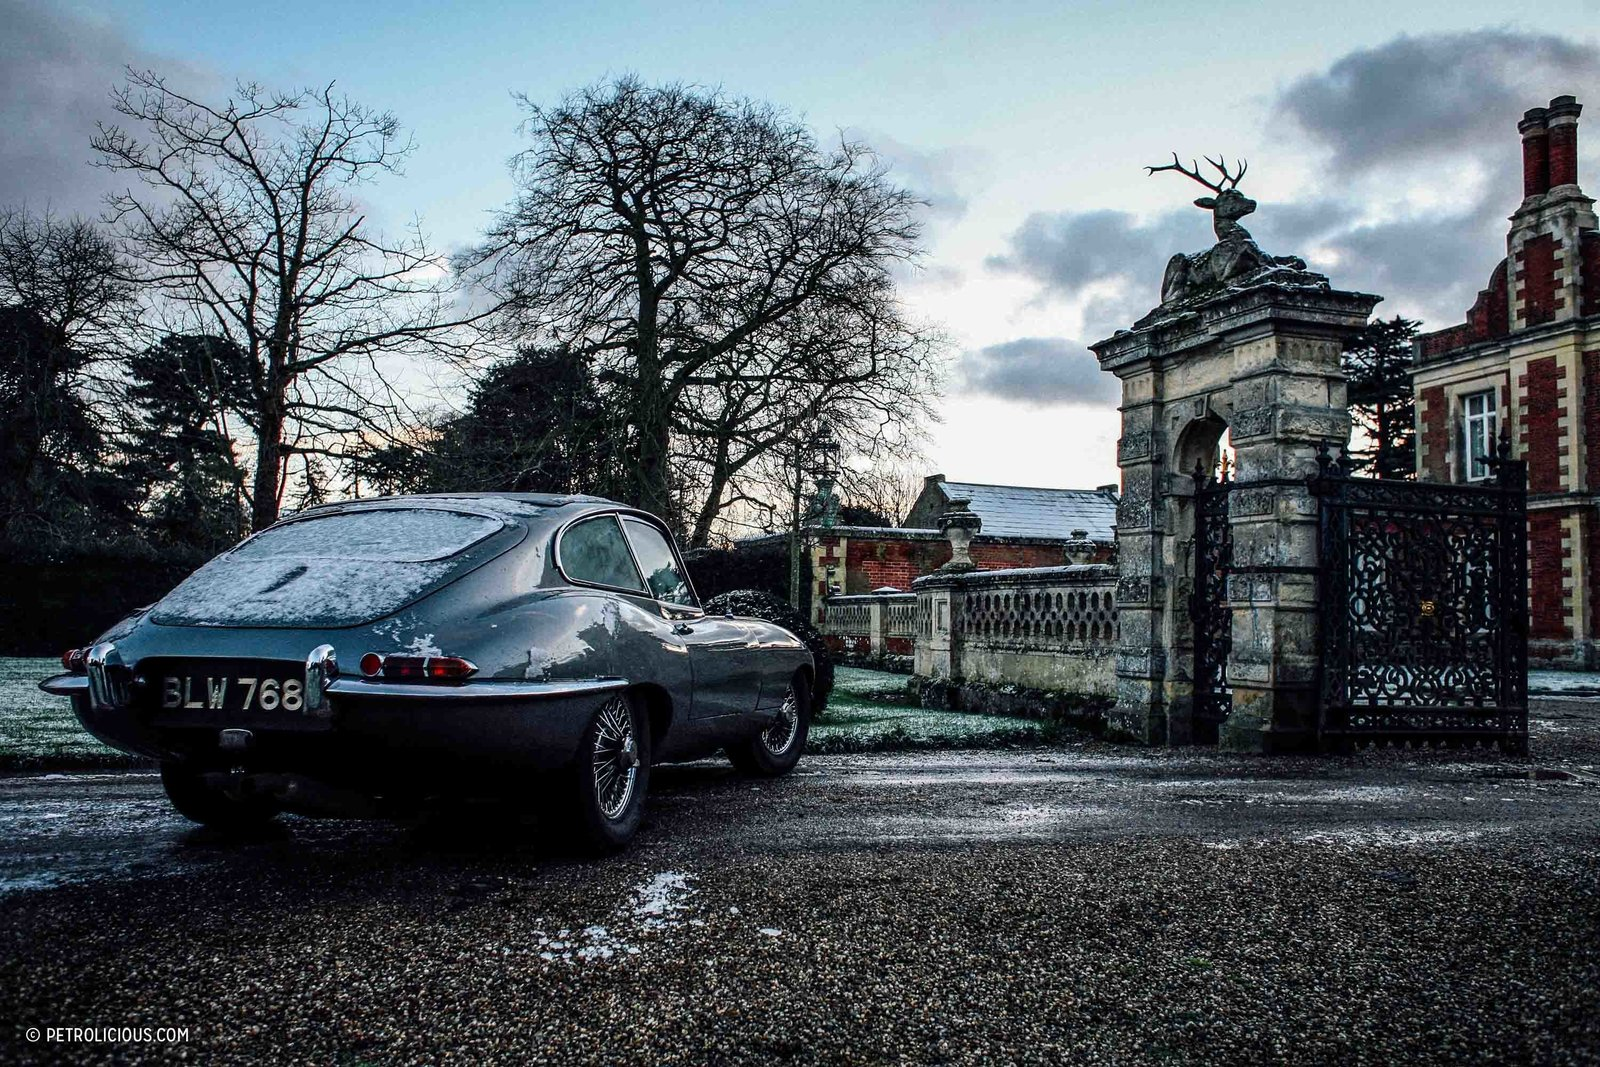 Photo 3 of 7 in I Drove 400 Miles In A Jaguar E-Type  And Lived To Tell The Tale